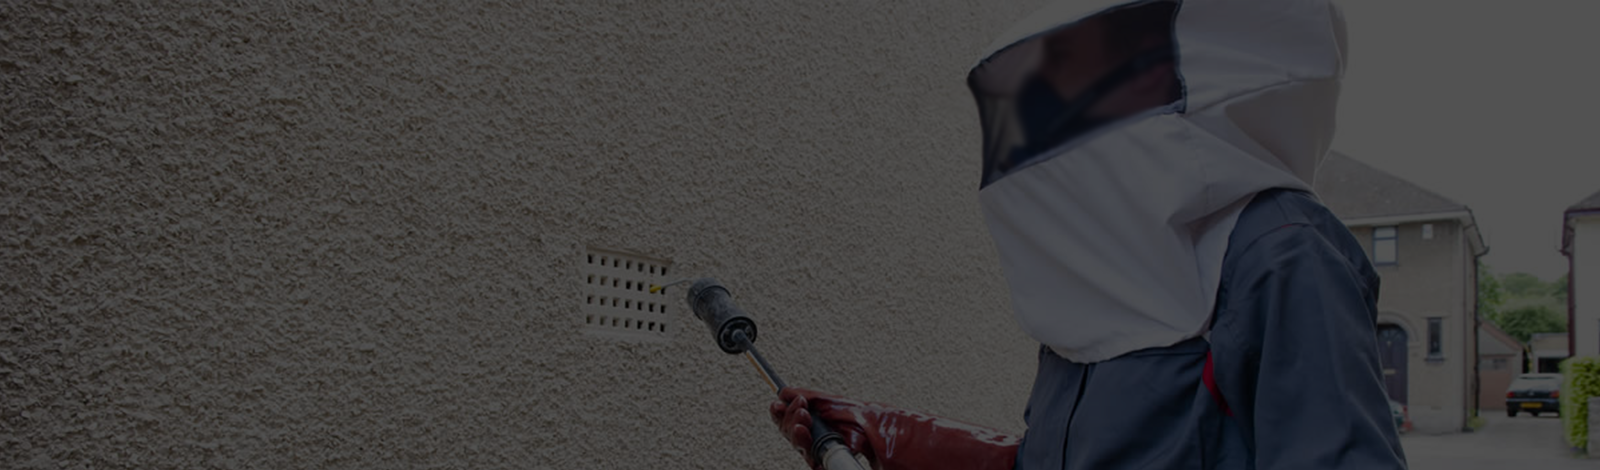 Residential-Pest-Control-Services